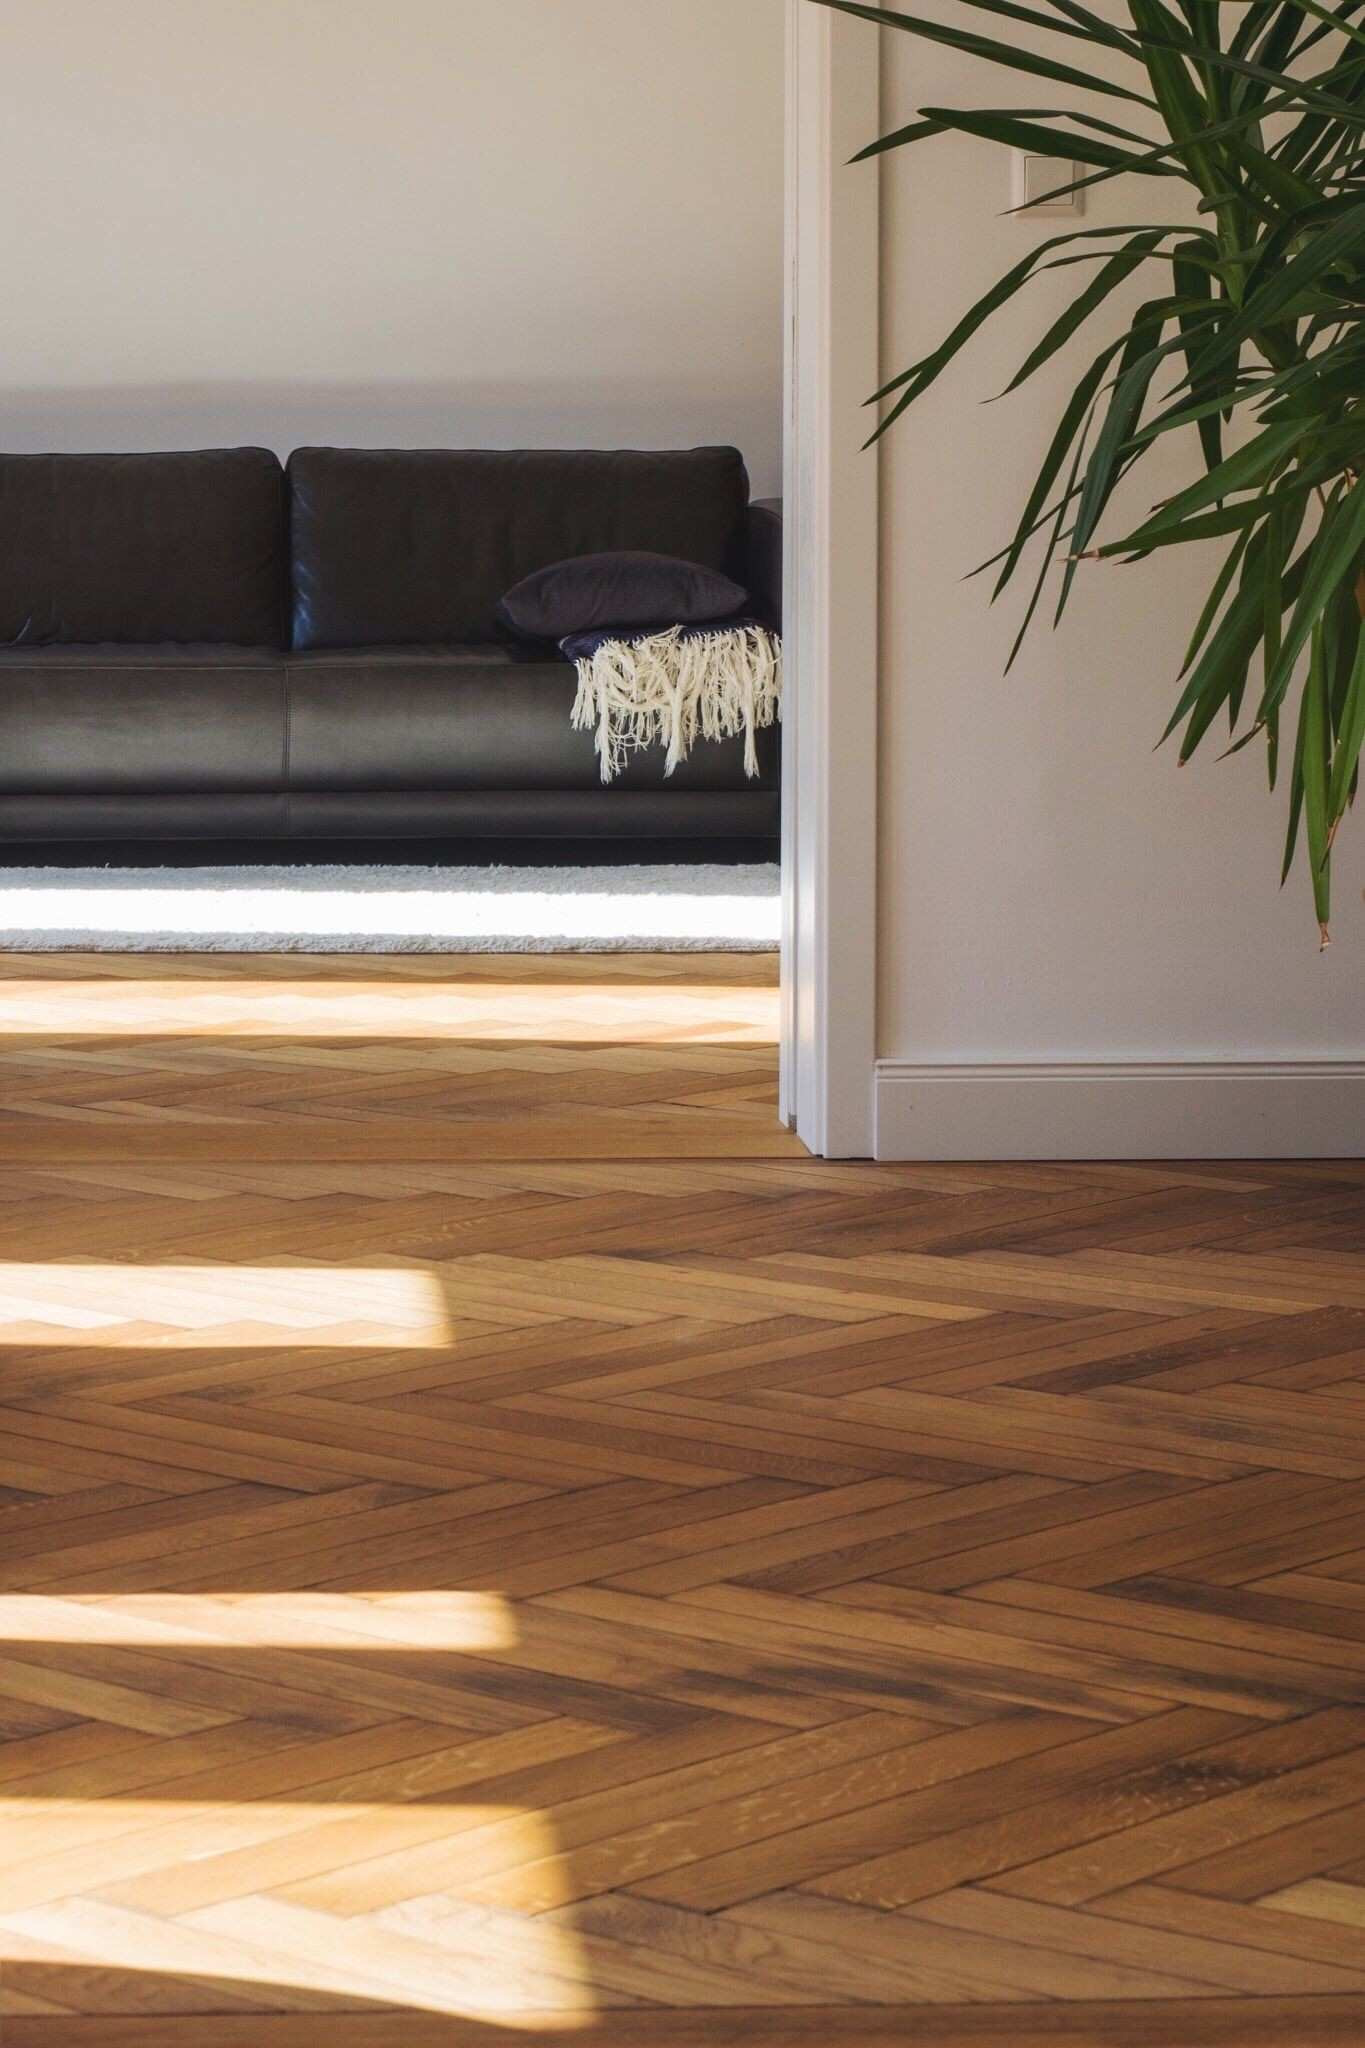 laminate or hardwood flooring which is better of decorating ideas for living rooms with hardwood floors elegant home throughout decorating ideas for living rooms with hardwood floors beautiful laminate flooring in a multi colored living